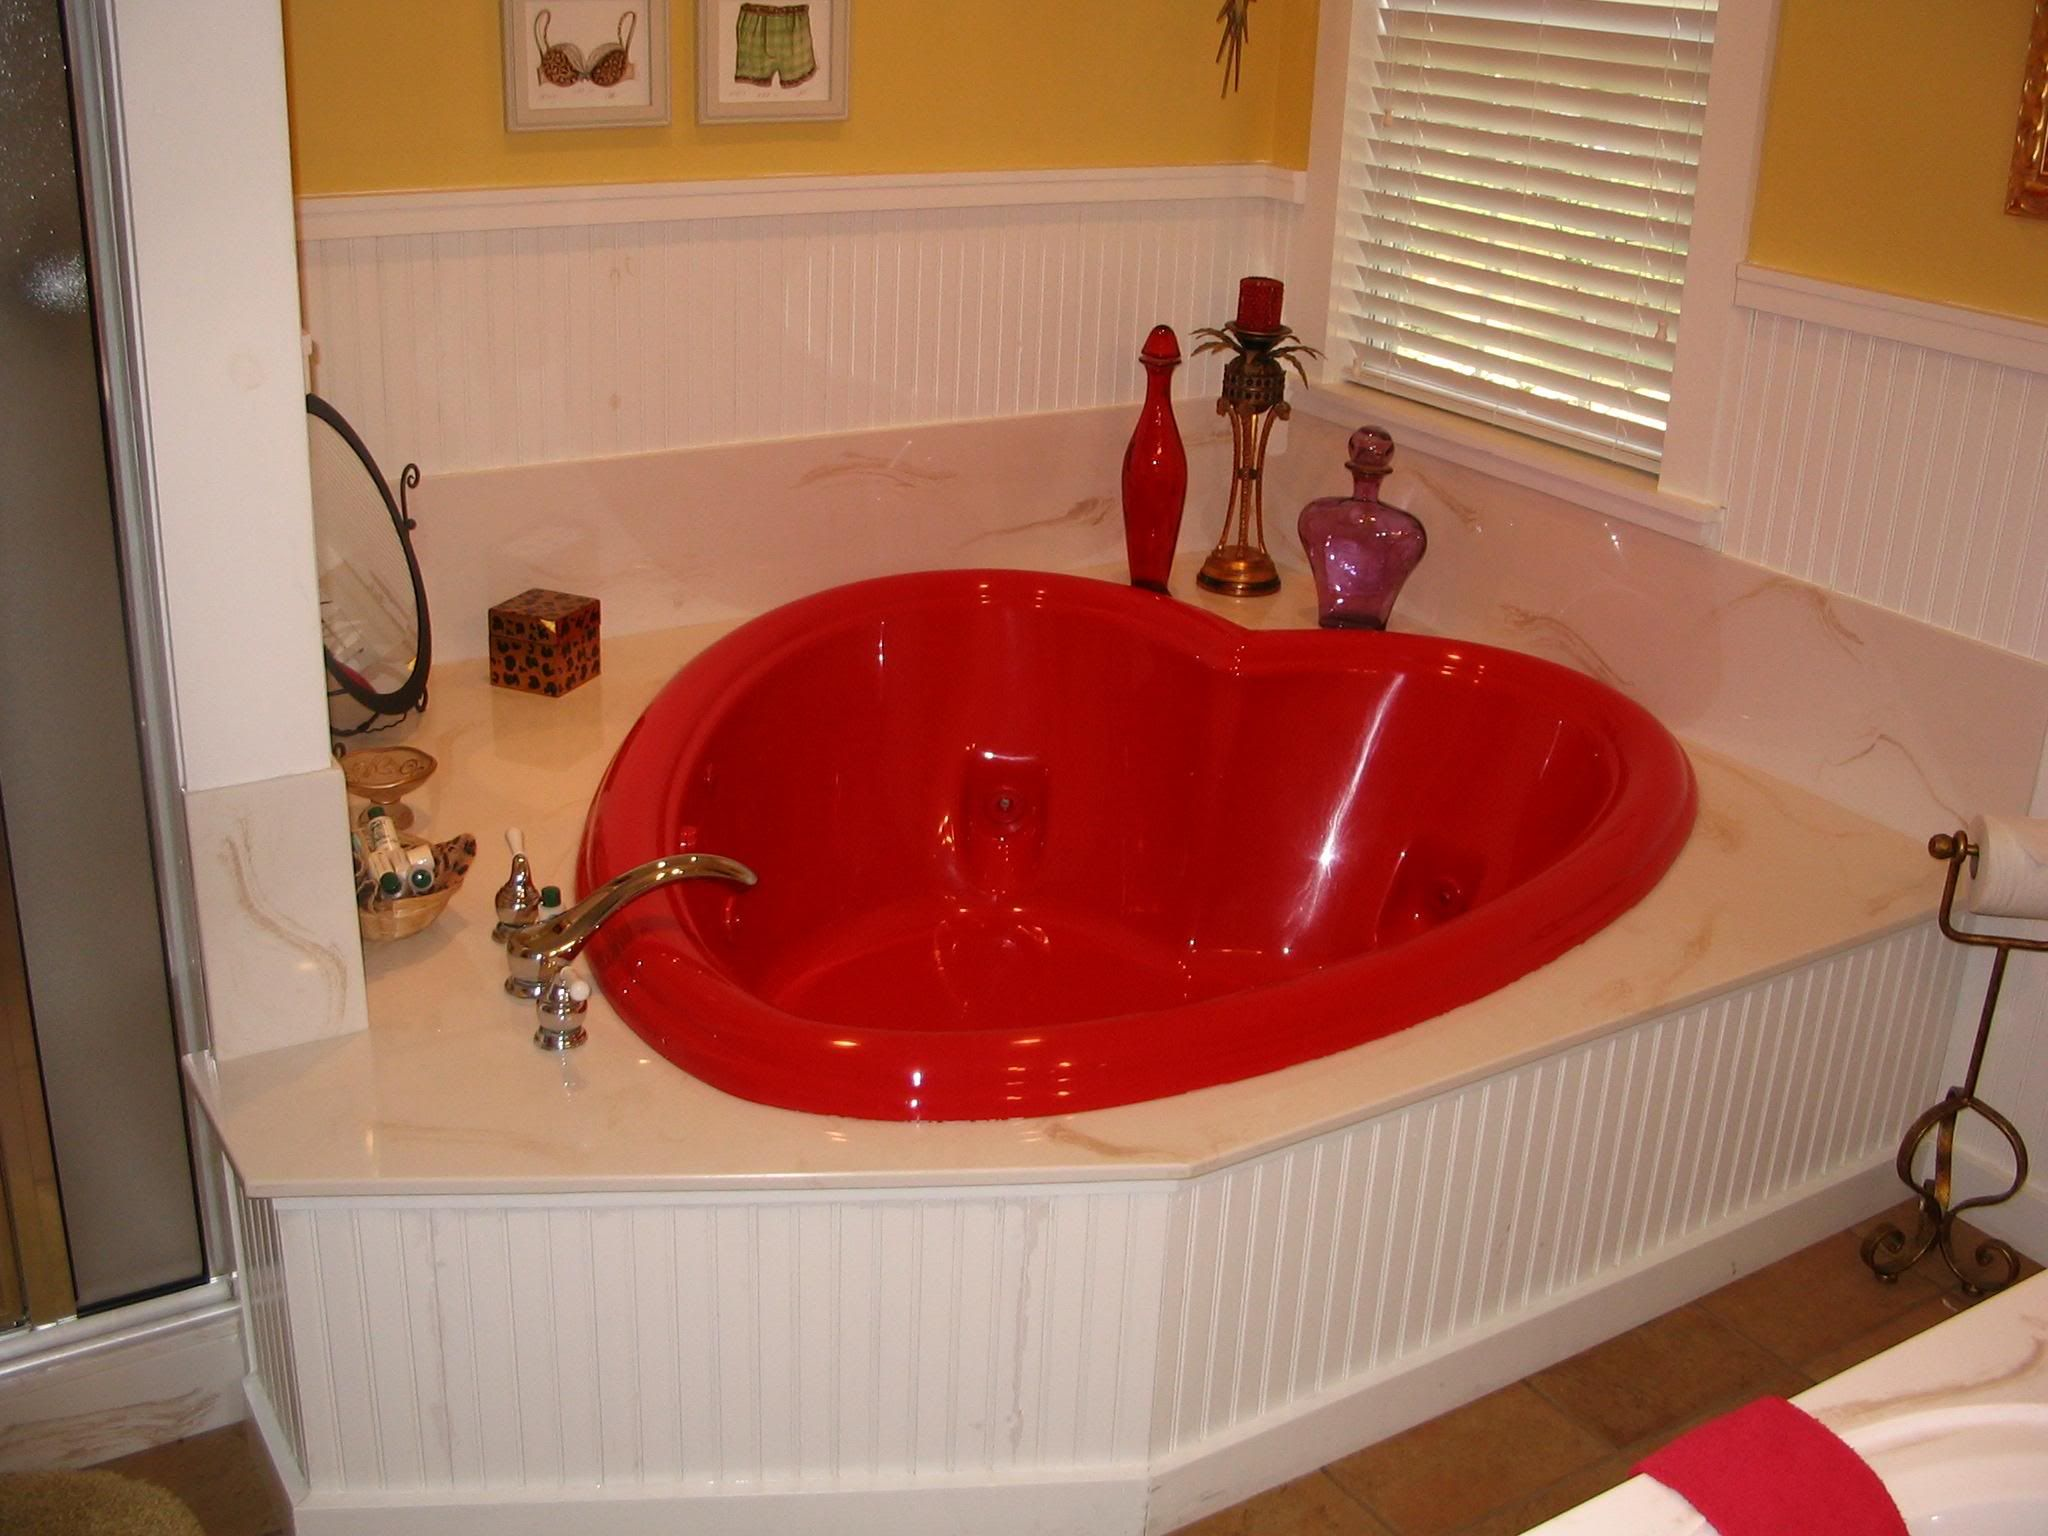 Heart Shaped Bathtub For Valentine S Day Romantic Bathrooms Bathroom Decor Bathroom Design